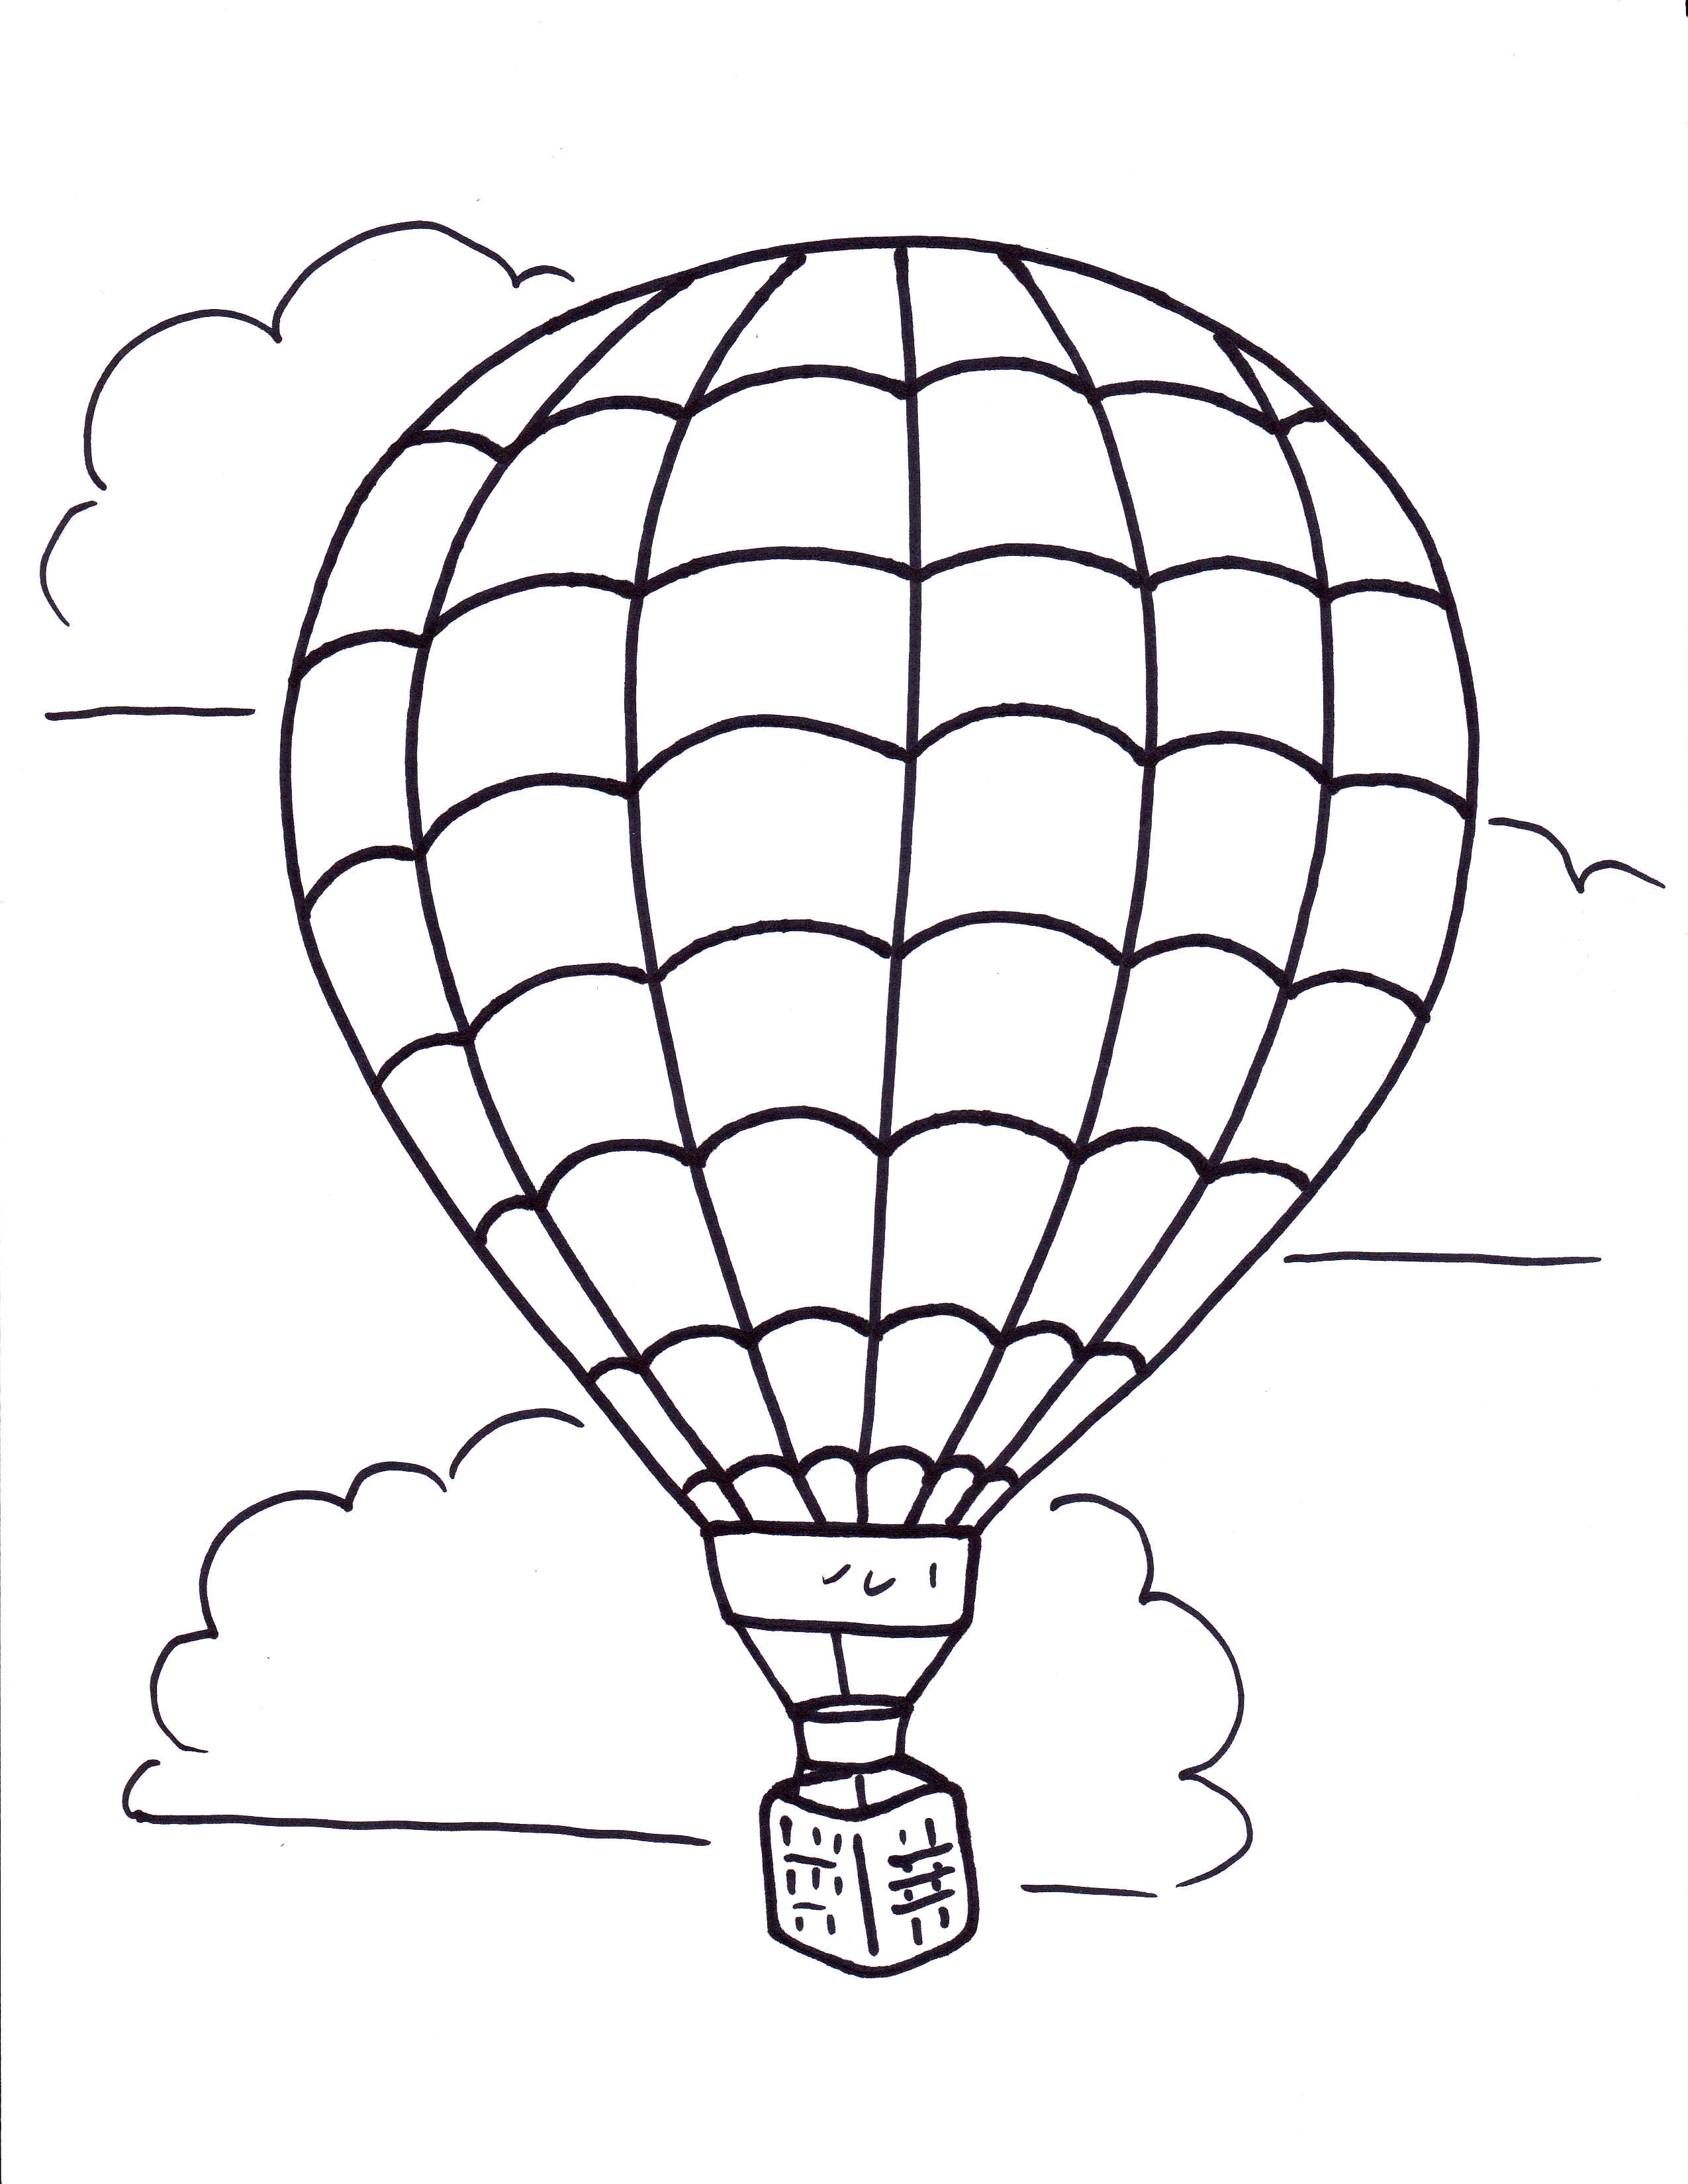 hot air balloon coloring pages Download-Colorful Hot Air Balloon Colouring Page Coloring Pages Free Bermuda 9-m